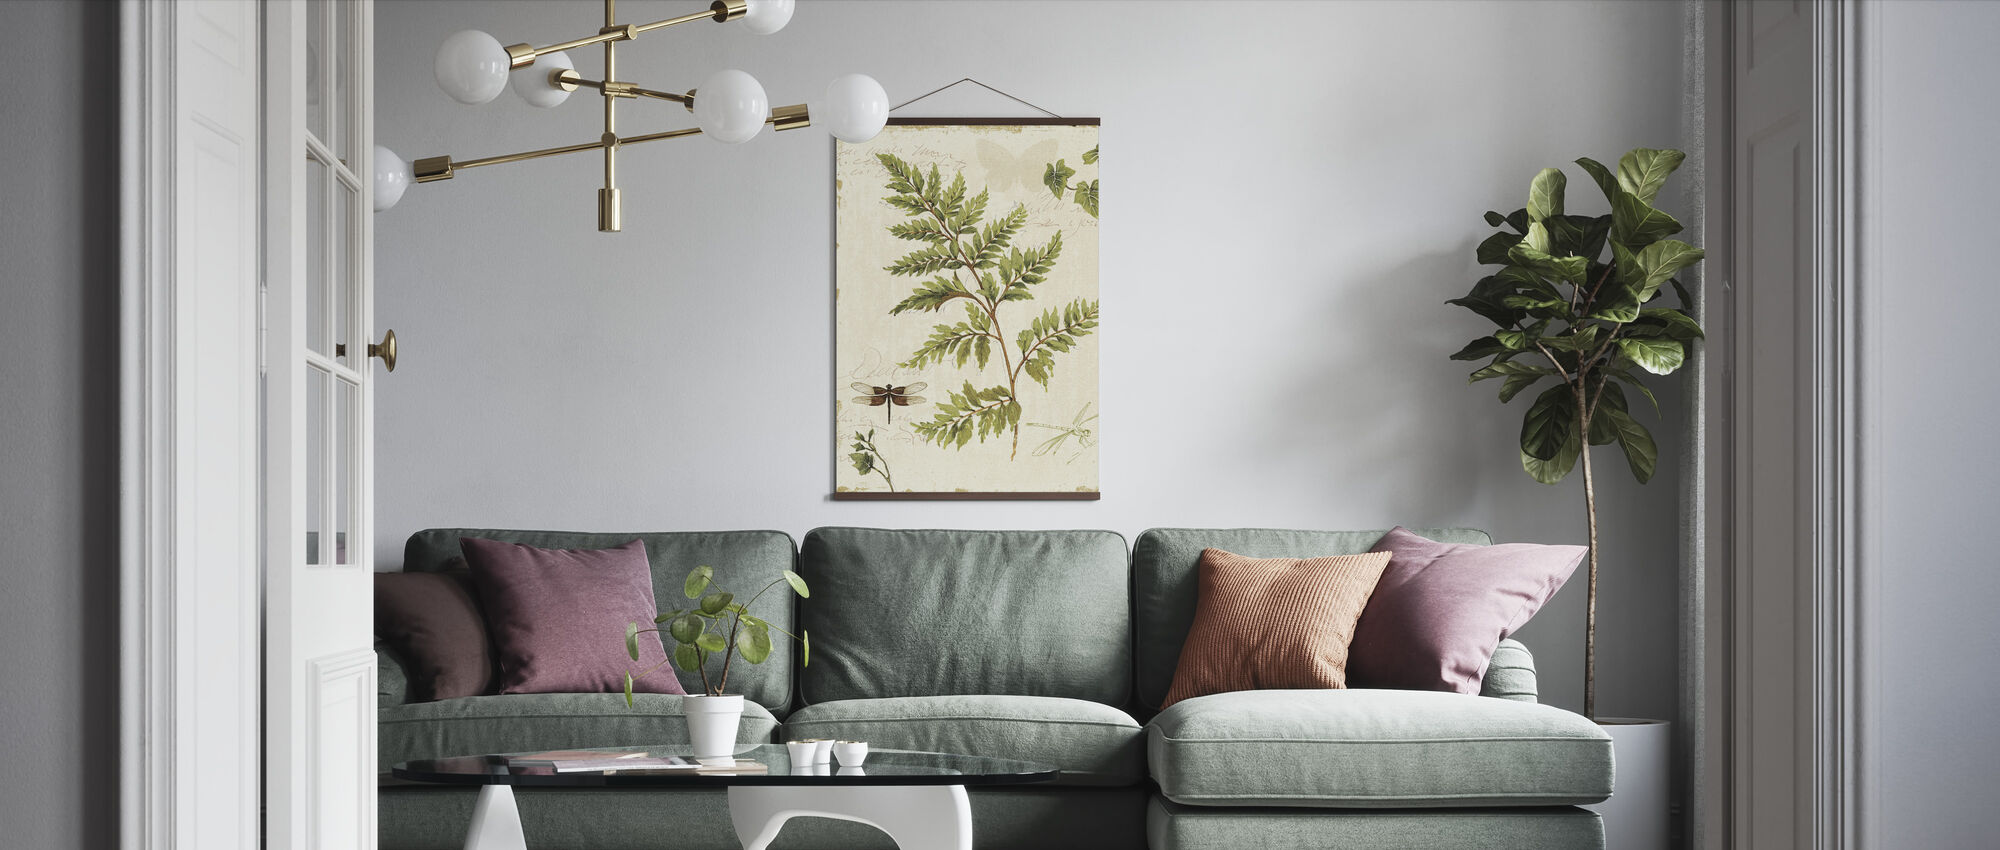 Ivies and Ferns - Poster - Living Room